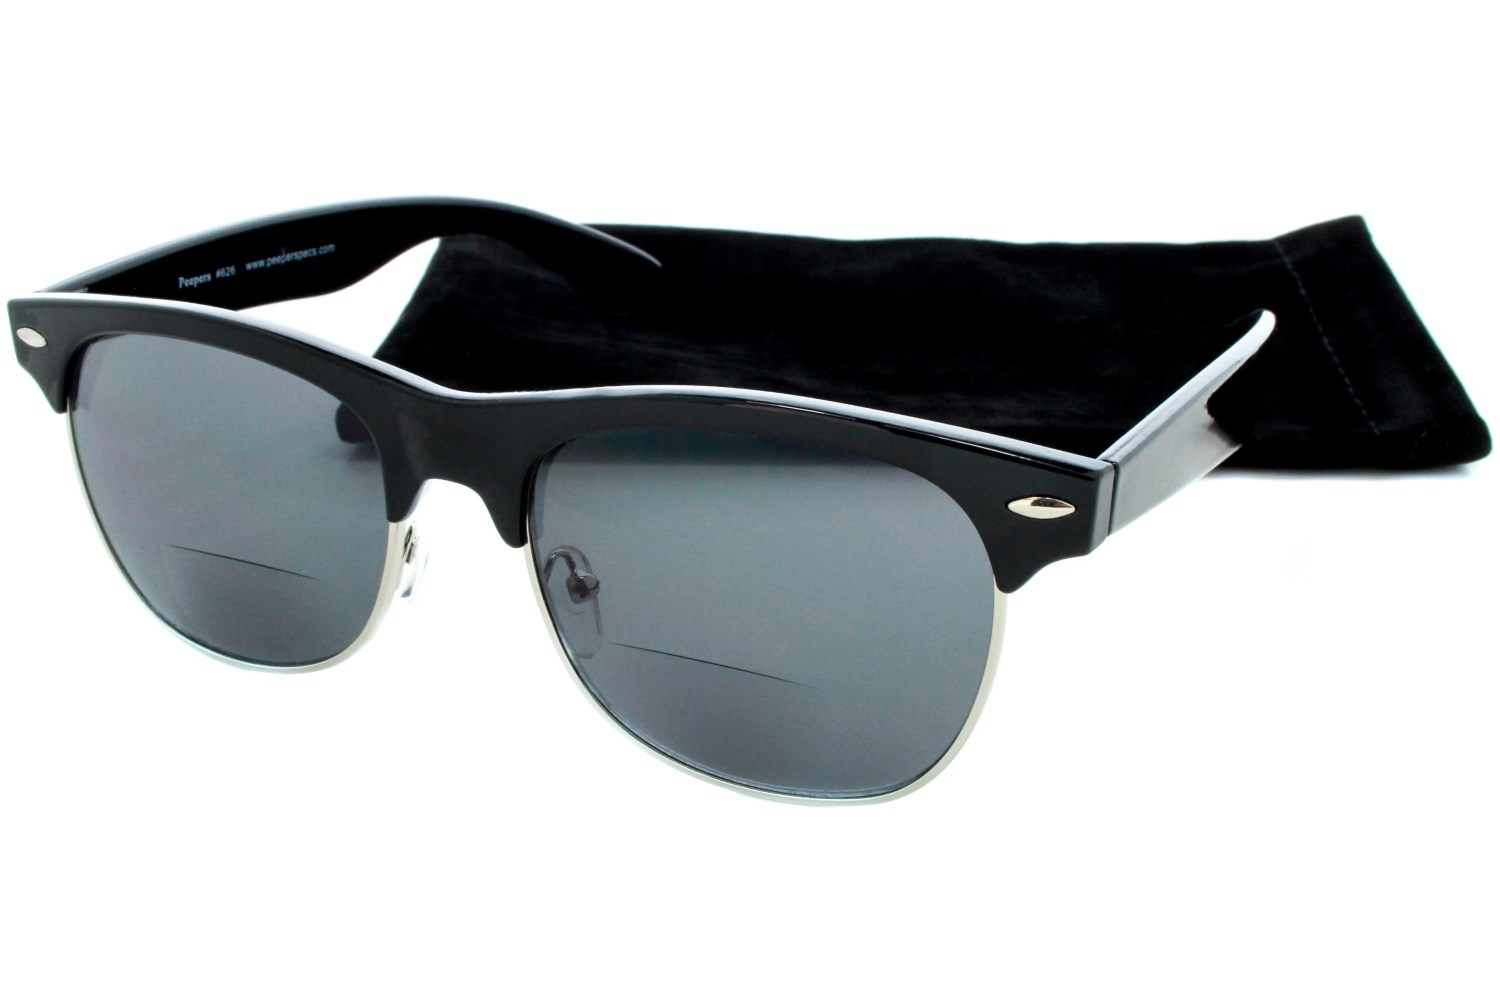 7a3d4add4c  19.95 More Details · Peepers Havana Mens Bifocal Sun Reading Glasses